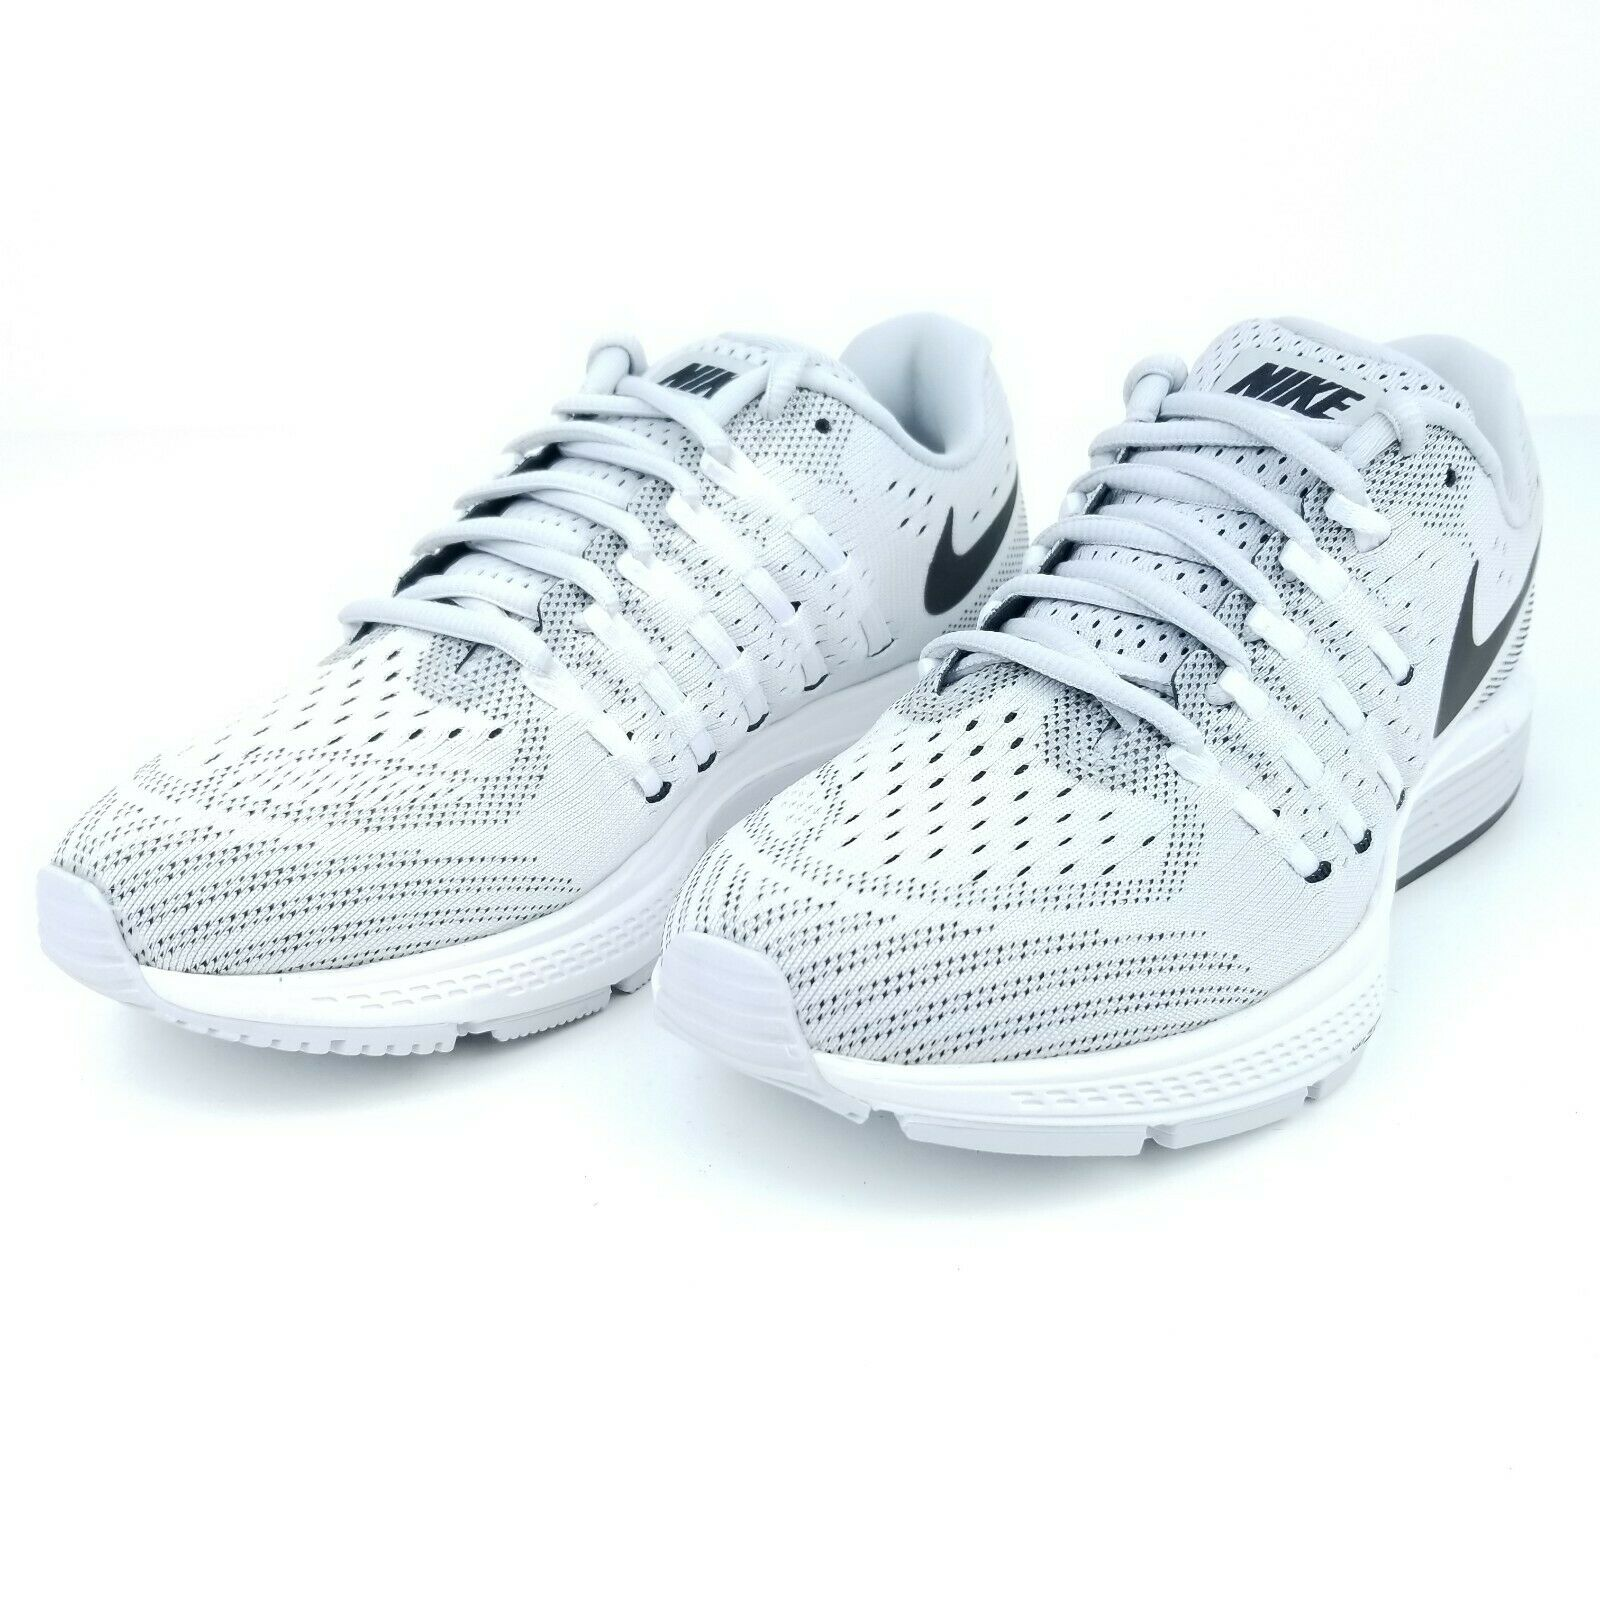 Nike Air Zoom Vomero 11 Women's Running Shoes Platinum Grey